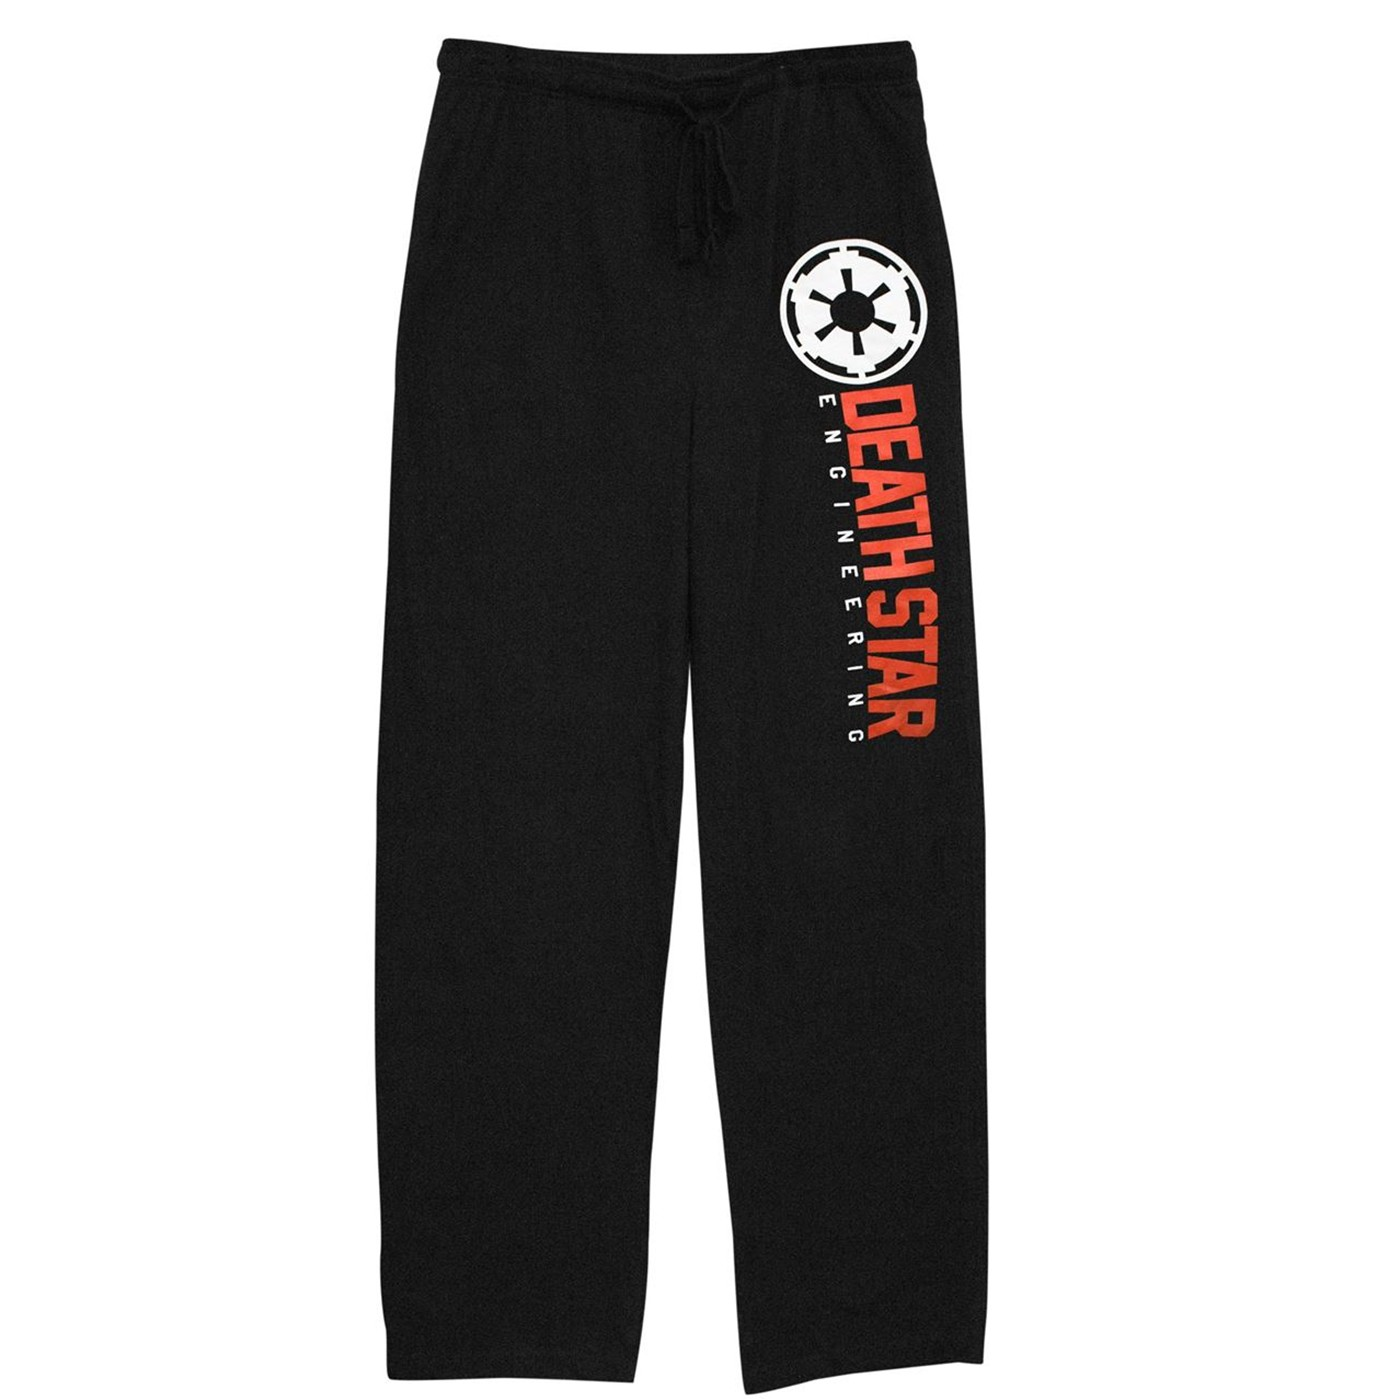 Star Wars Death Star Engineering Unisex Pajama Pants